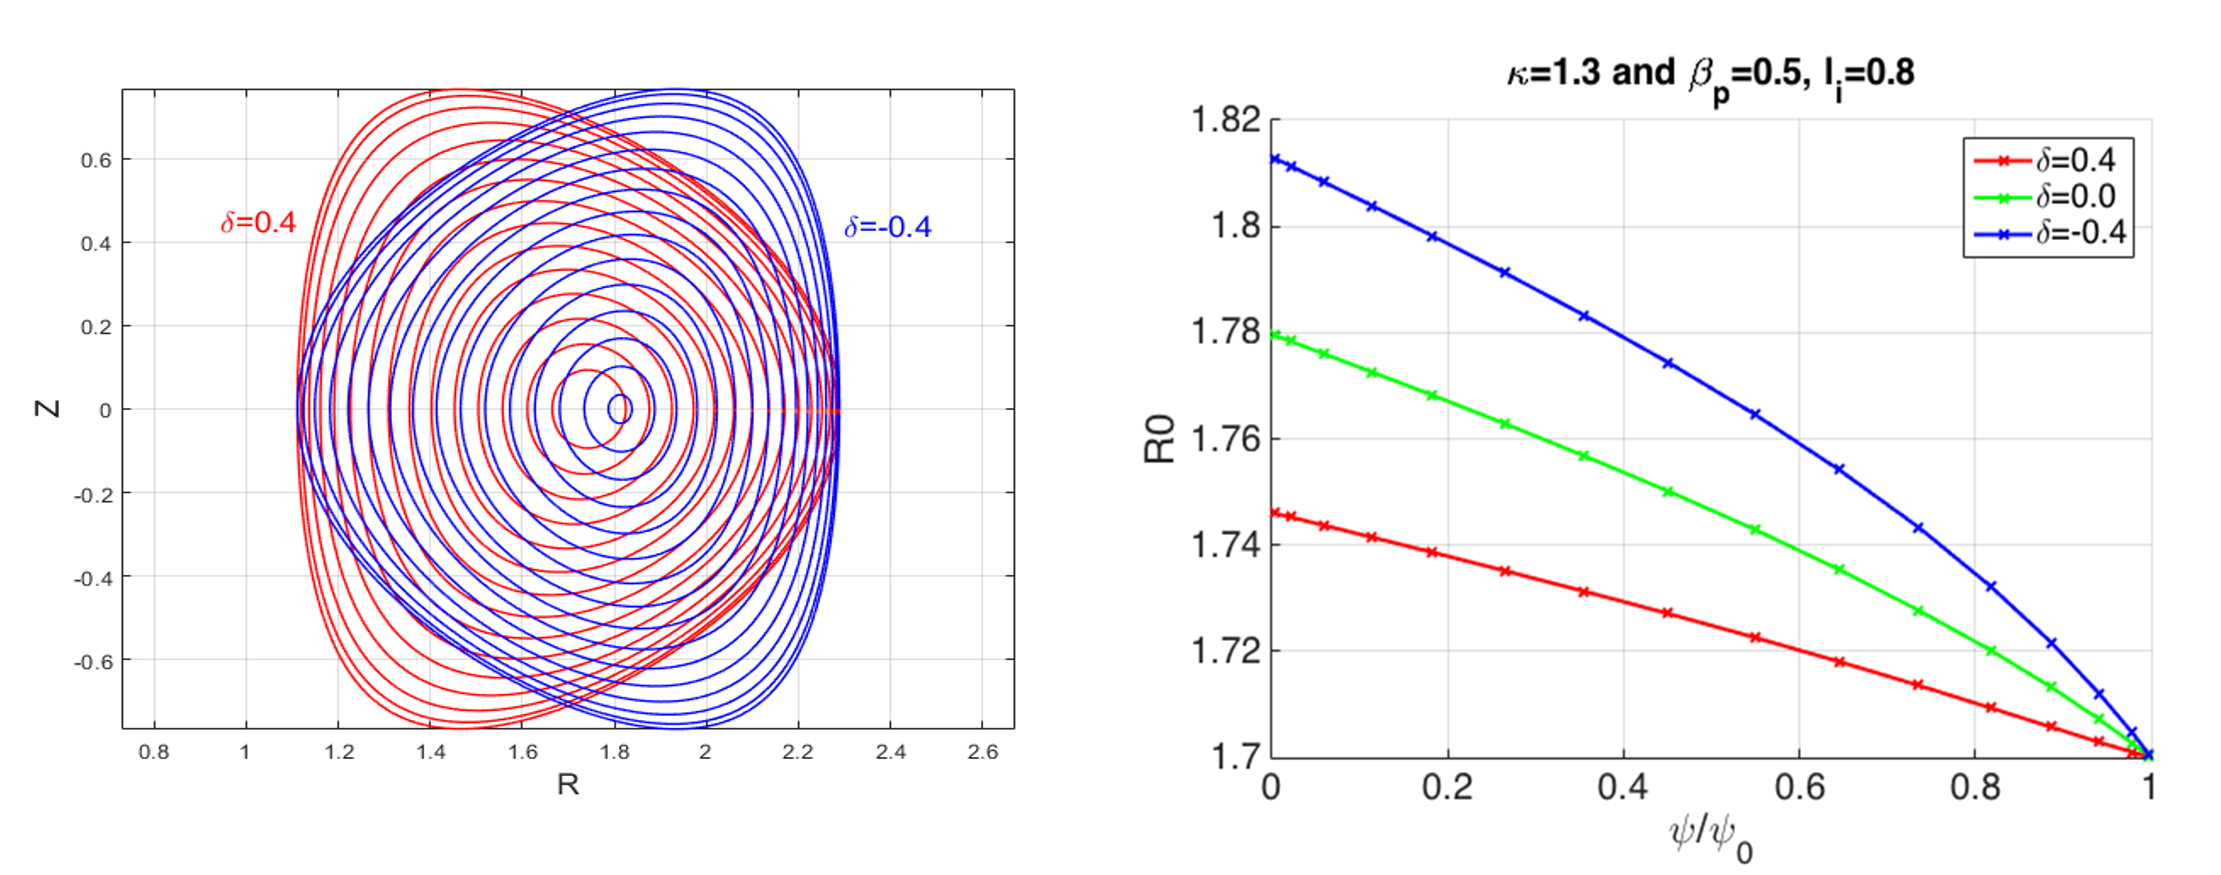 MHD equilibrium computed by ECOM for the DIIID tokamak parameters [2] Ip=0.9 MA, BT=2.0T, κ=1.3 with different triangularity: (a) 2-D contour plot of poloidal flux for δ=-0.4 (blue) and δ=0.4 (red) (b) Major radius change (Shafranov shift) of the flux surface center in terms of the normalized radius when the last closed flux surface is fixed as R0=1.7 m